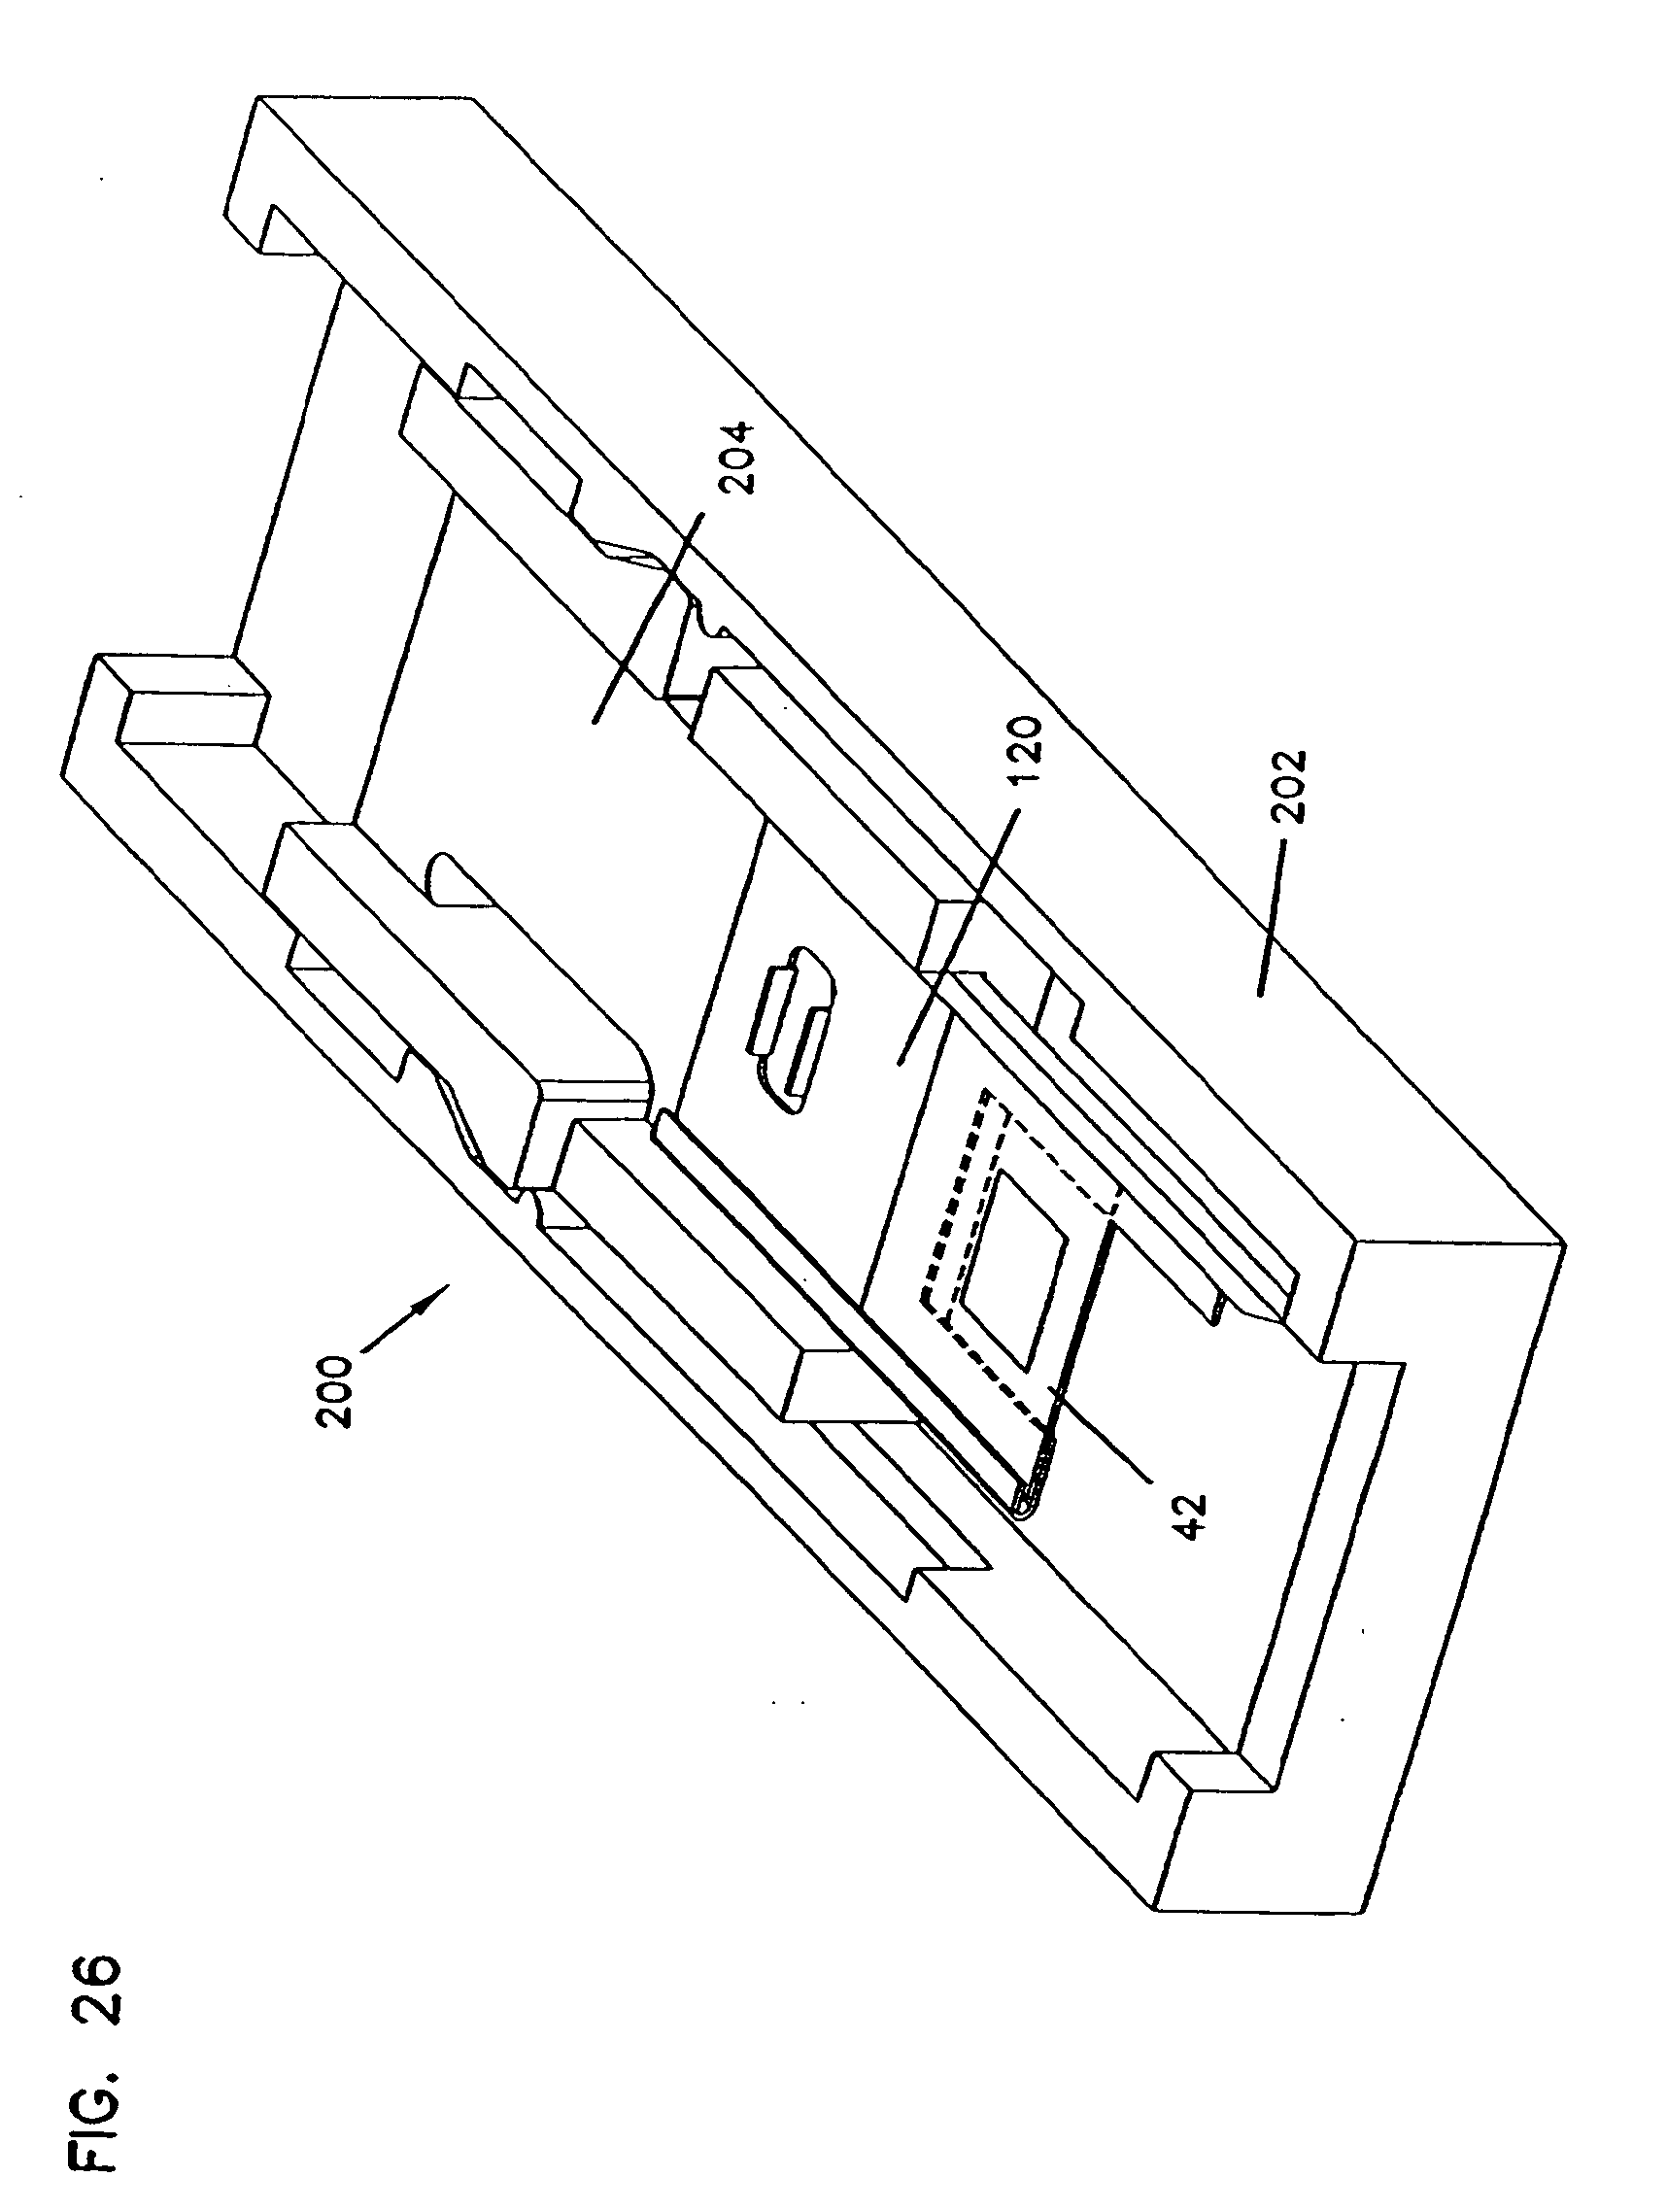 Us20100168659a1 analyte monitoring device and methods of use patents